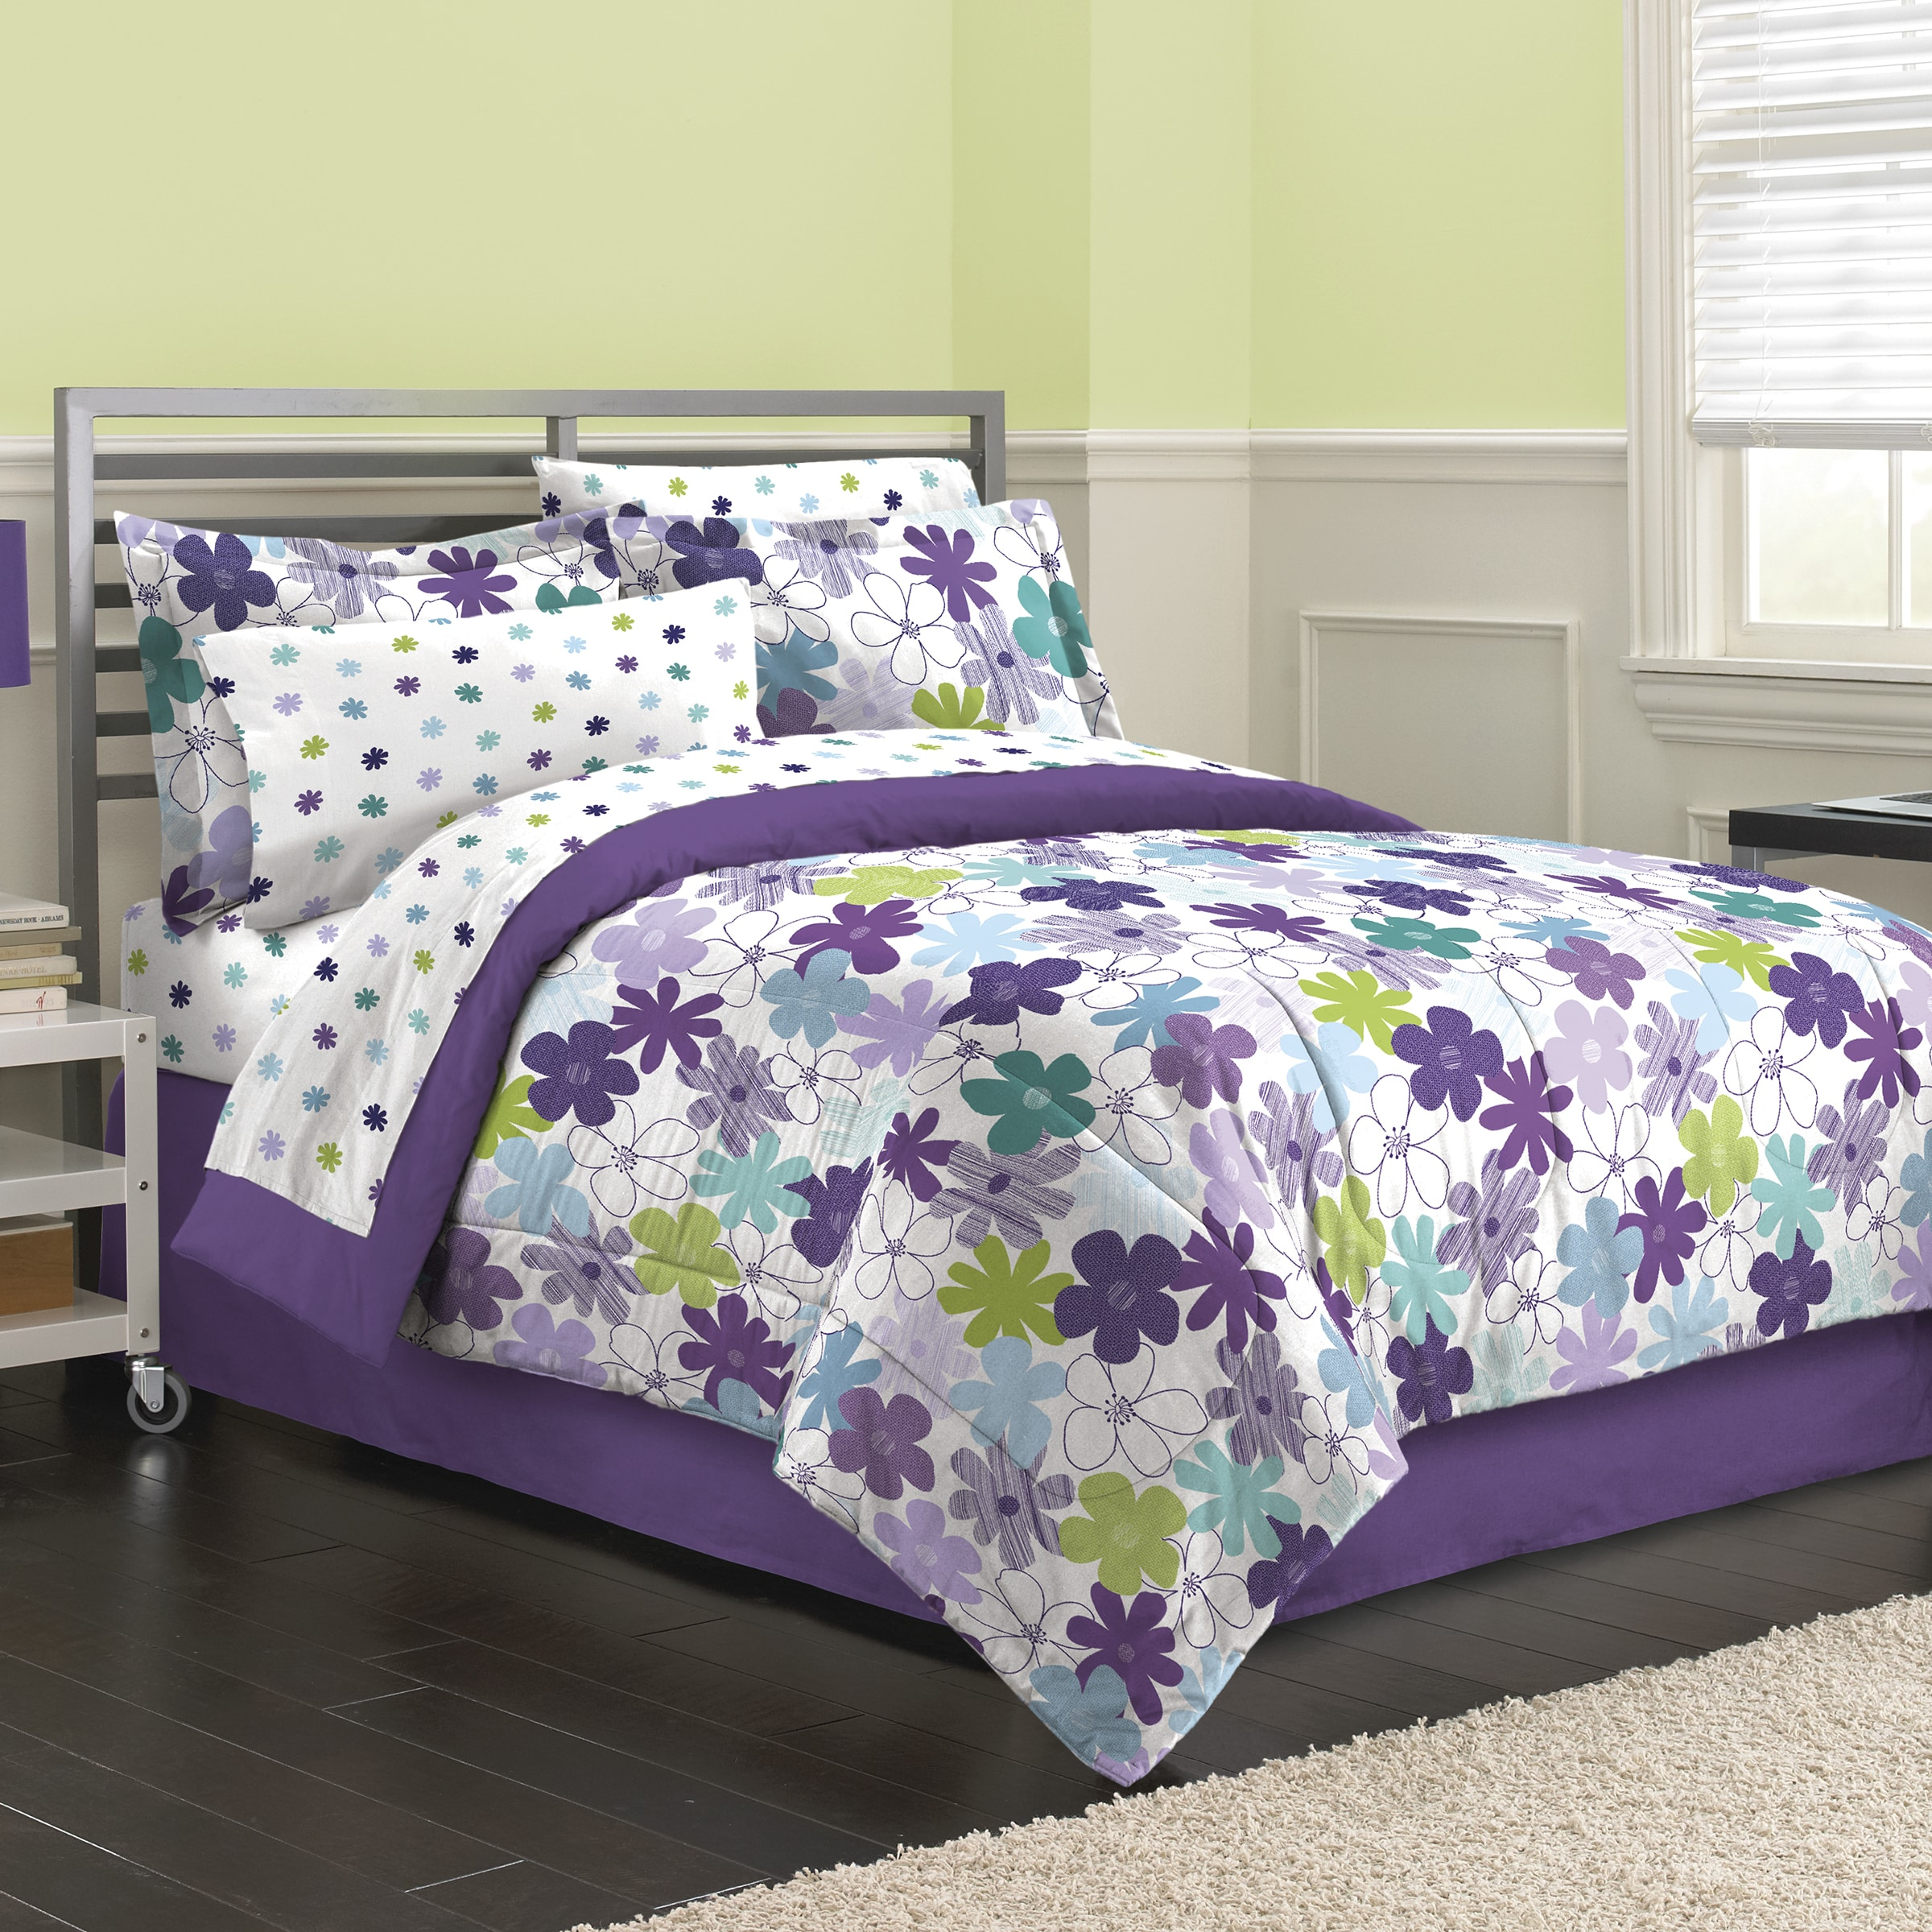 Graphic Daisy 8-piece Bed in a Bag with Sheet Set (Queen)...